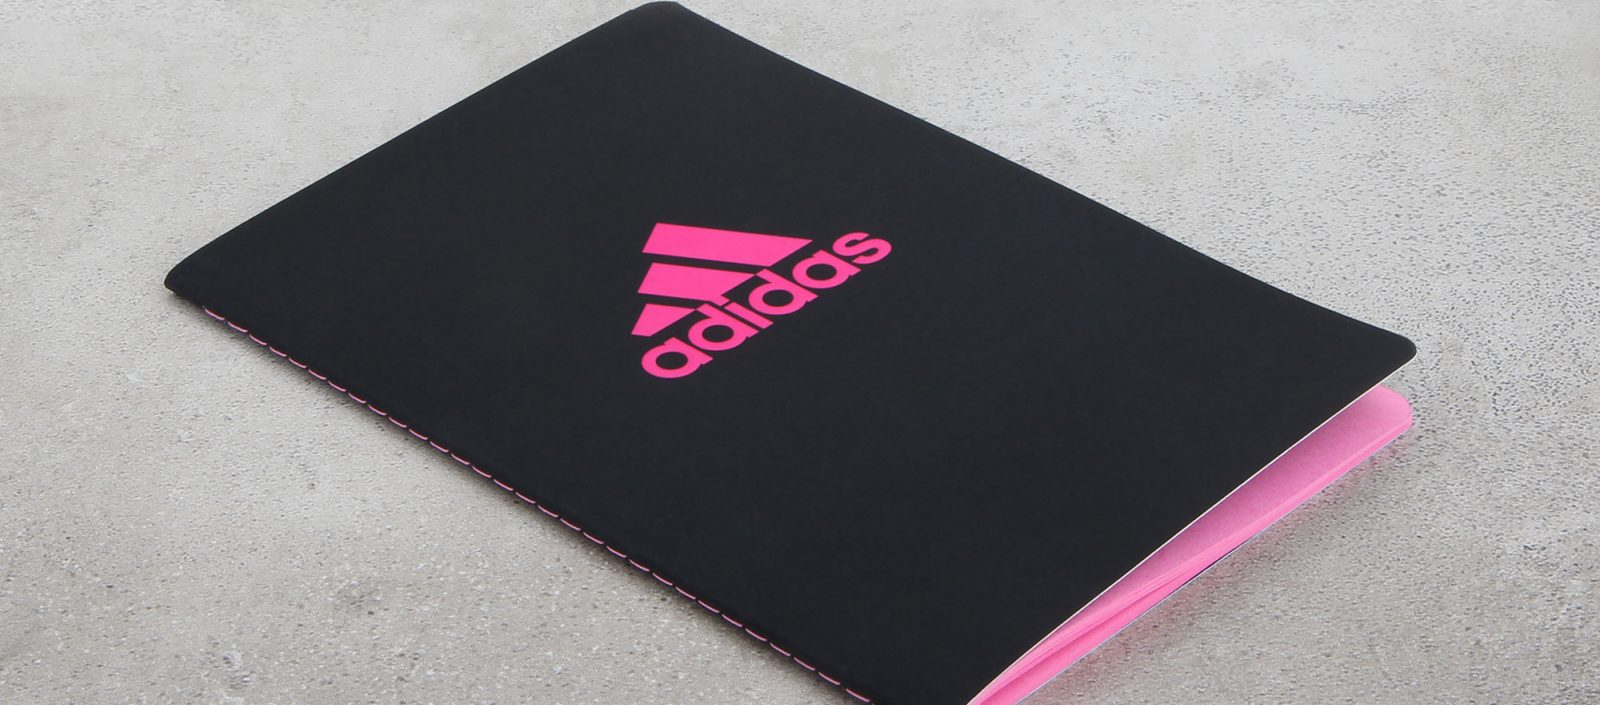 colomee-case-notizbuch-adidas-pink